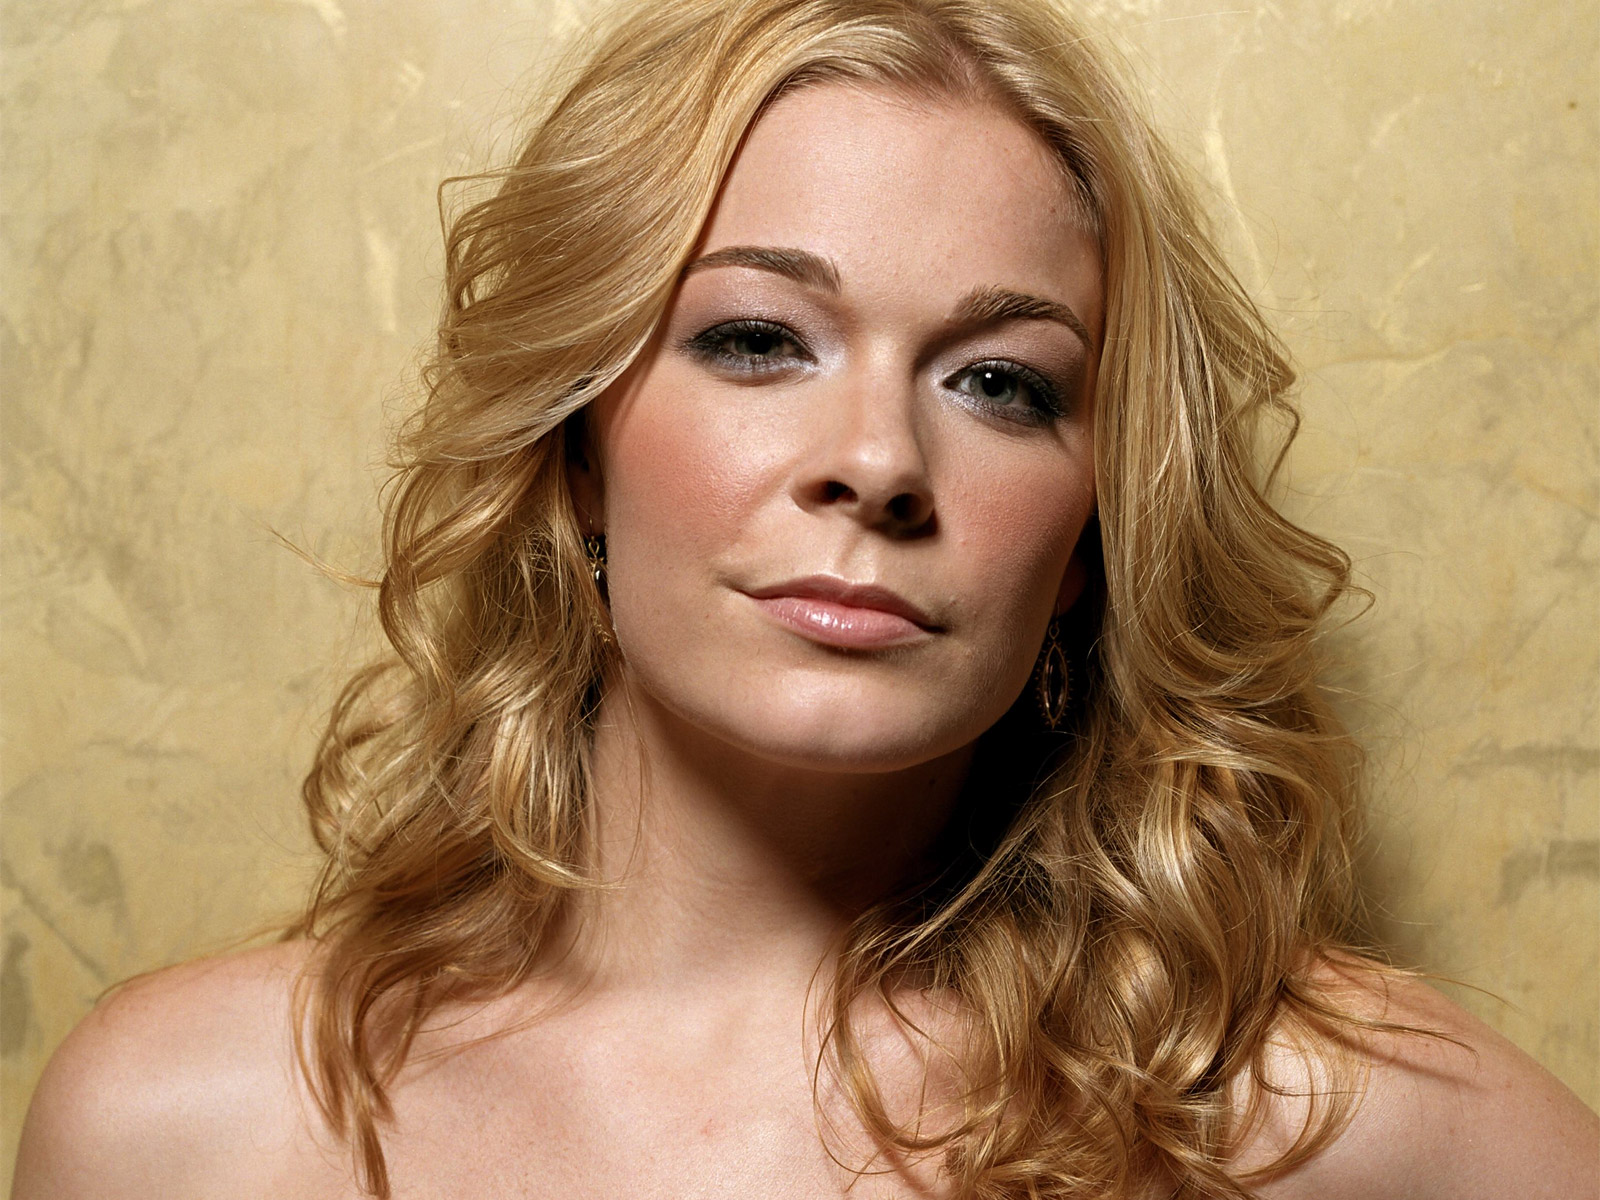 Leann Rimes - Images Colection